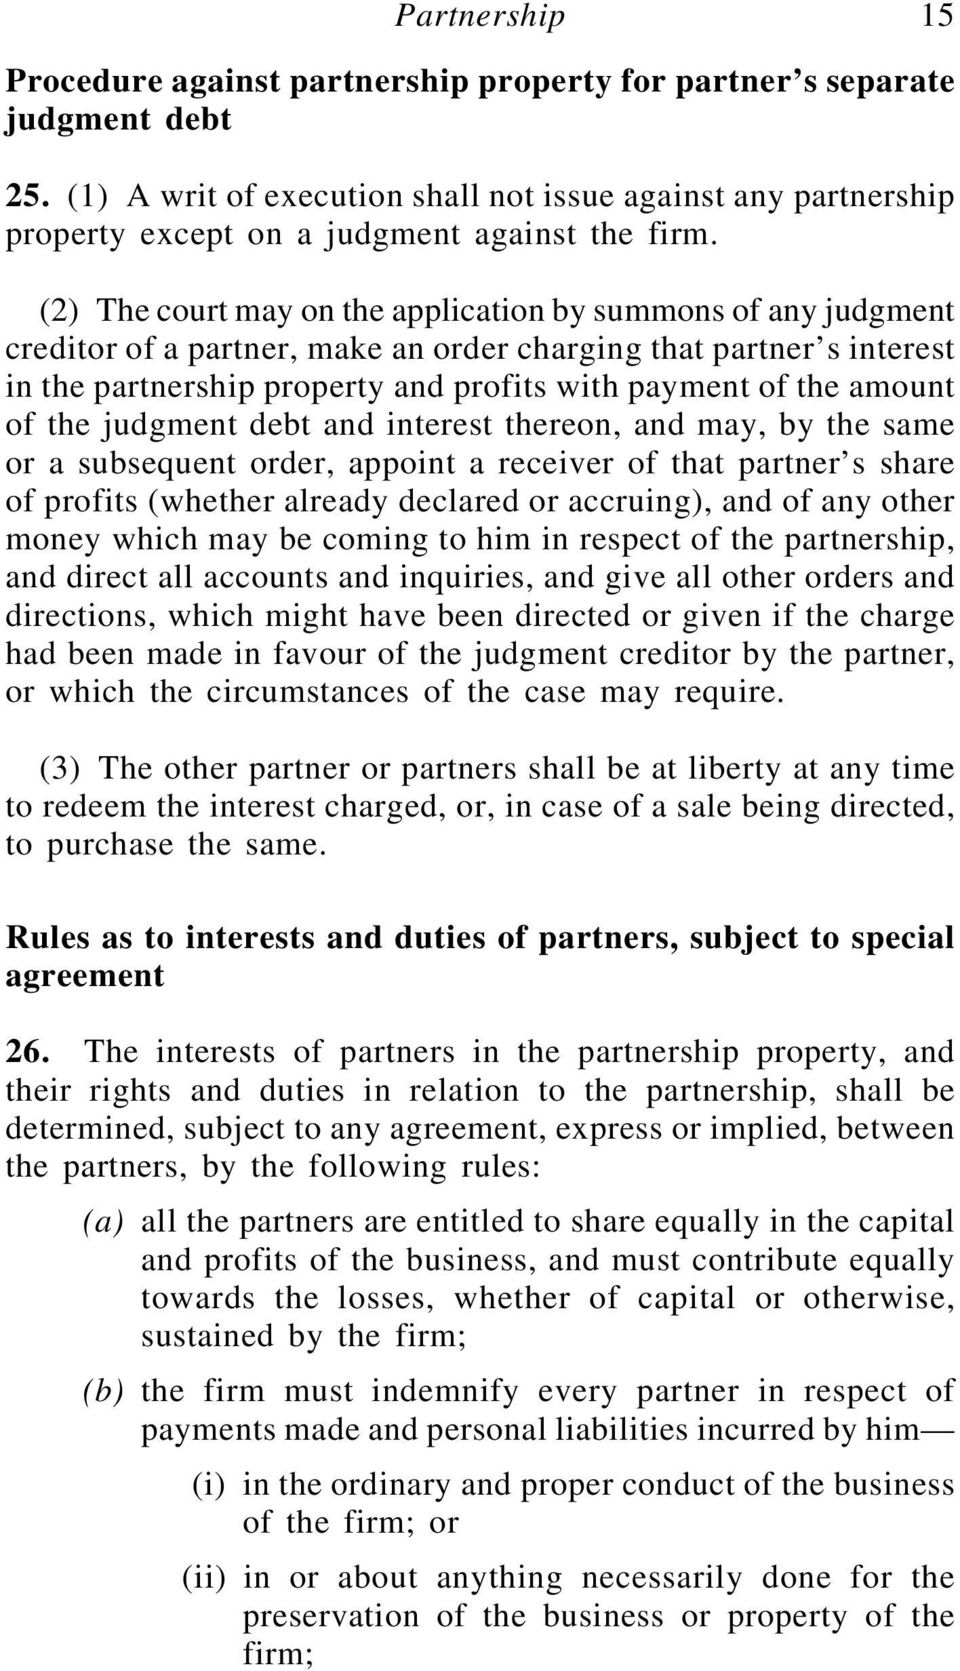 (2) The court may on the application by summons of any judgment creditor of a partner, make an order charging that partner s interest in the partnership property and profits with payment of the